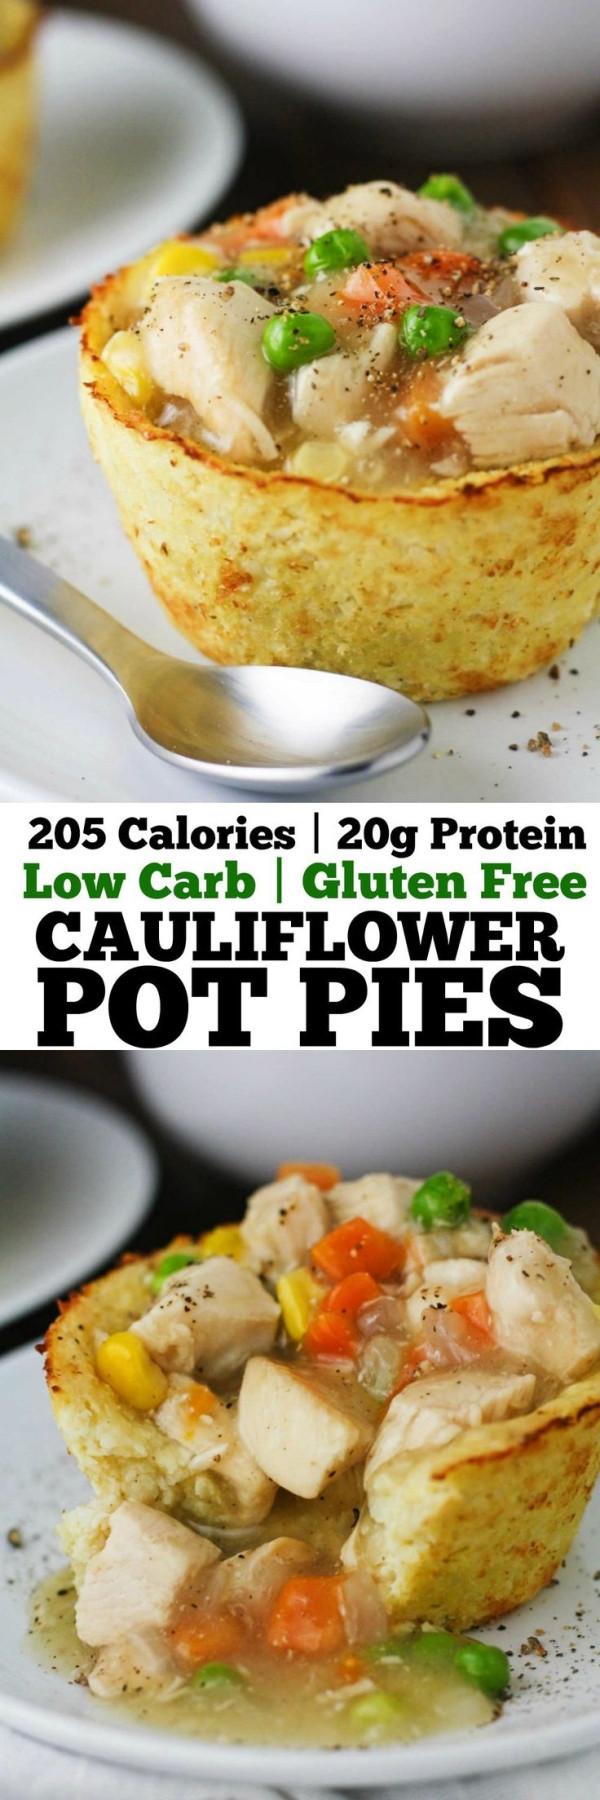 Low Calorie Chicken Pot Pie  These Low Carb Cauliflower Pot Pies have all the flavors